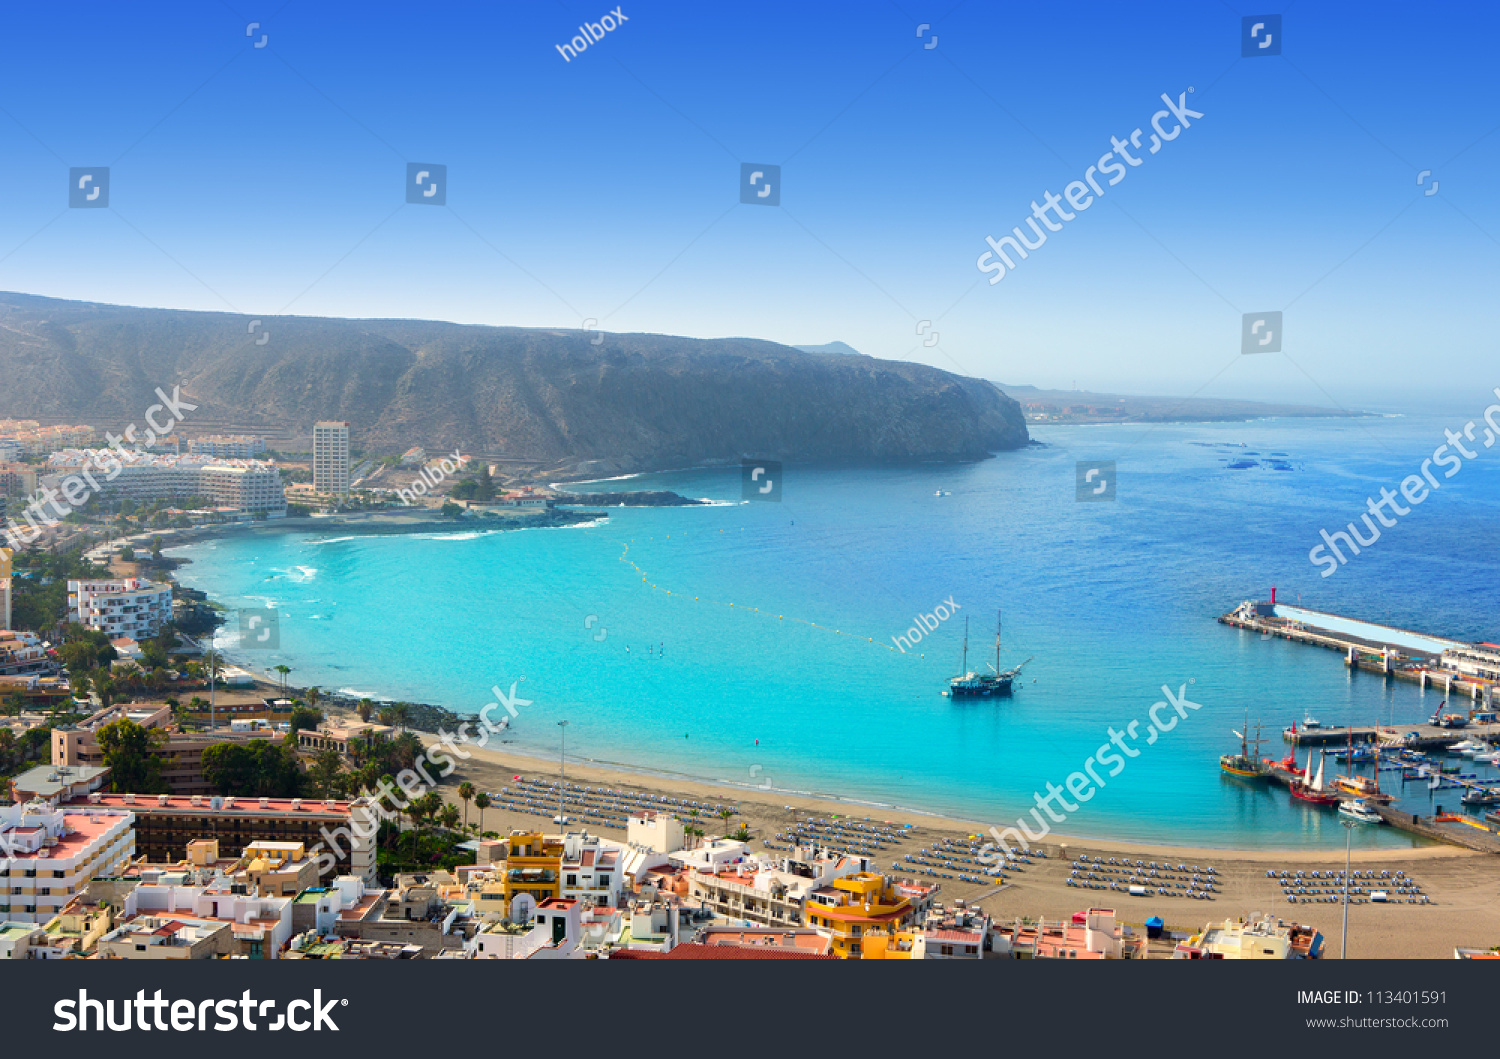 drone footage with Stock Photo Aerial View Of Los Cristianos Beach In Arona Tenerife Canary Islands on Sensefly Ebee furthermore Watch besides Watch in addition Little Corn Island Drone Footage as well See Tynemouth Whitley Bay Like 11922874.